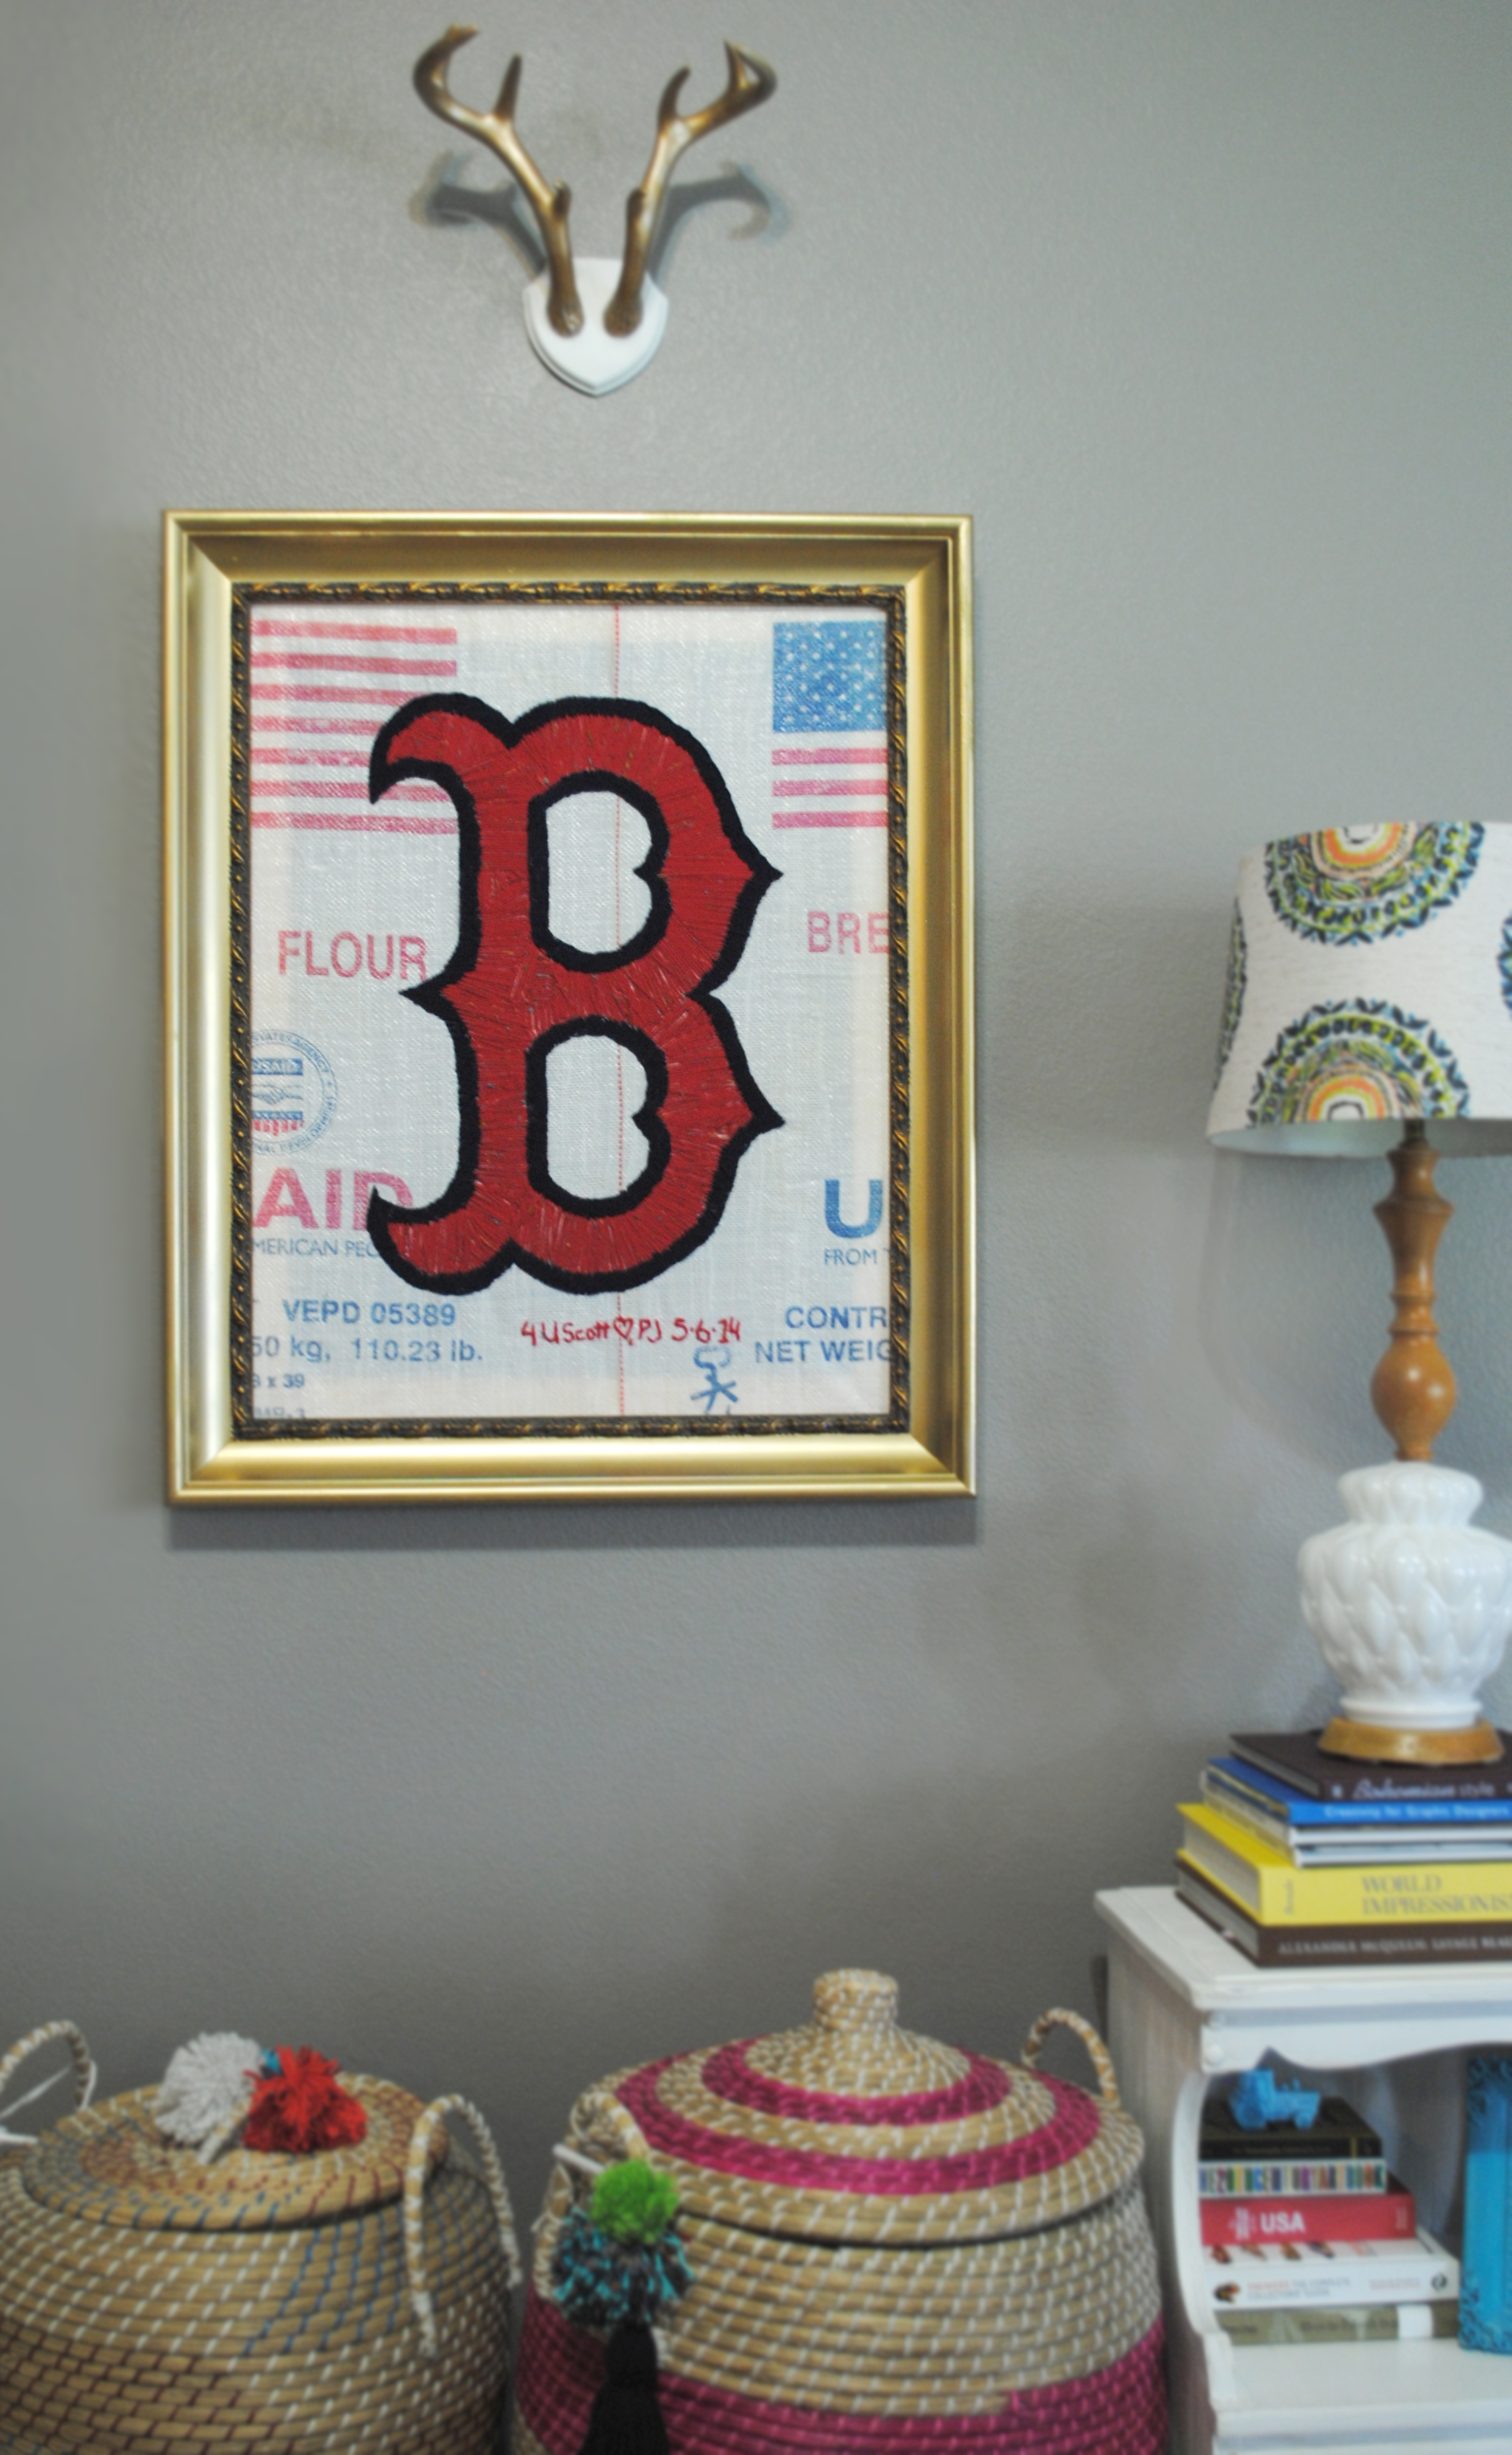 Boston Embroidery